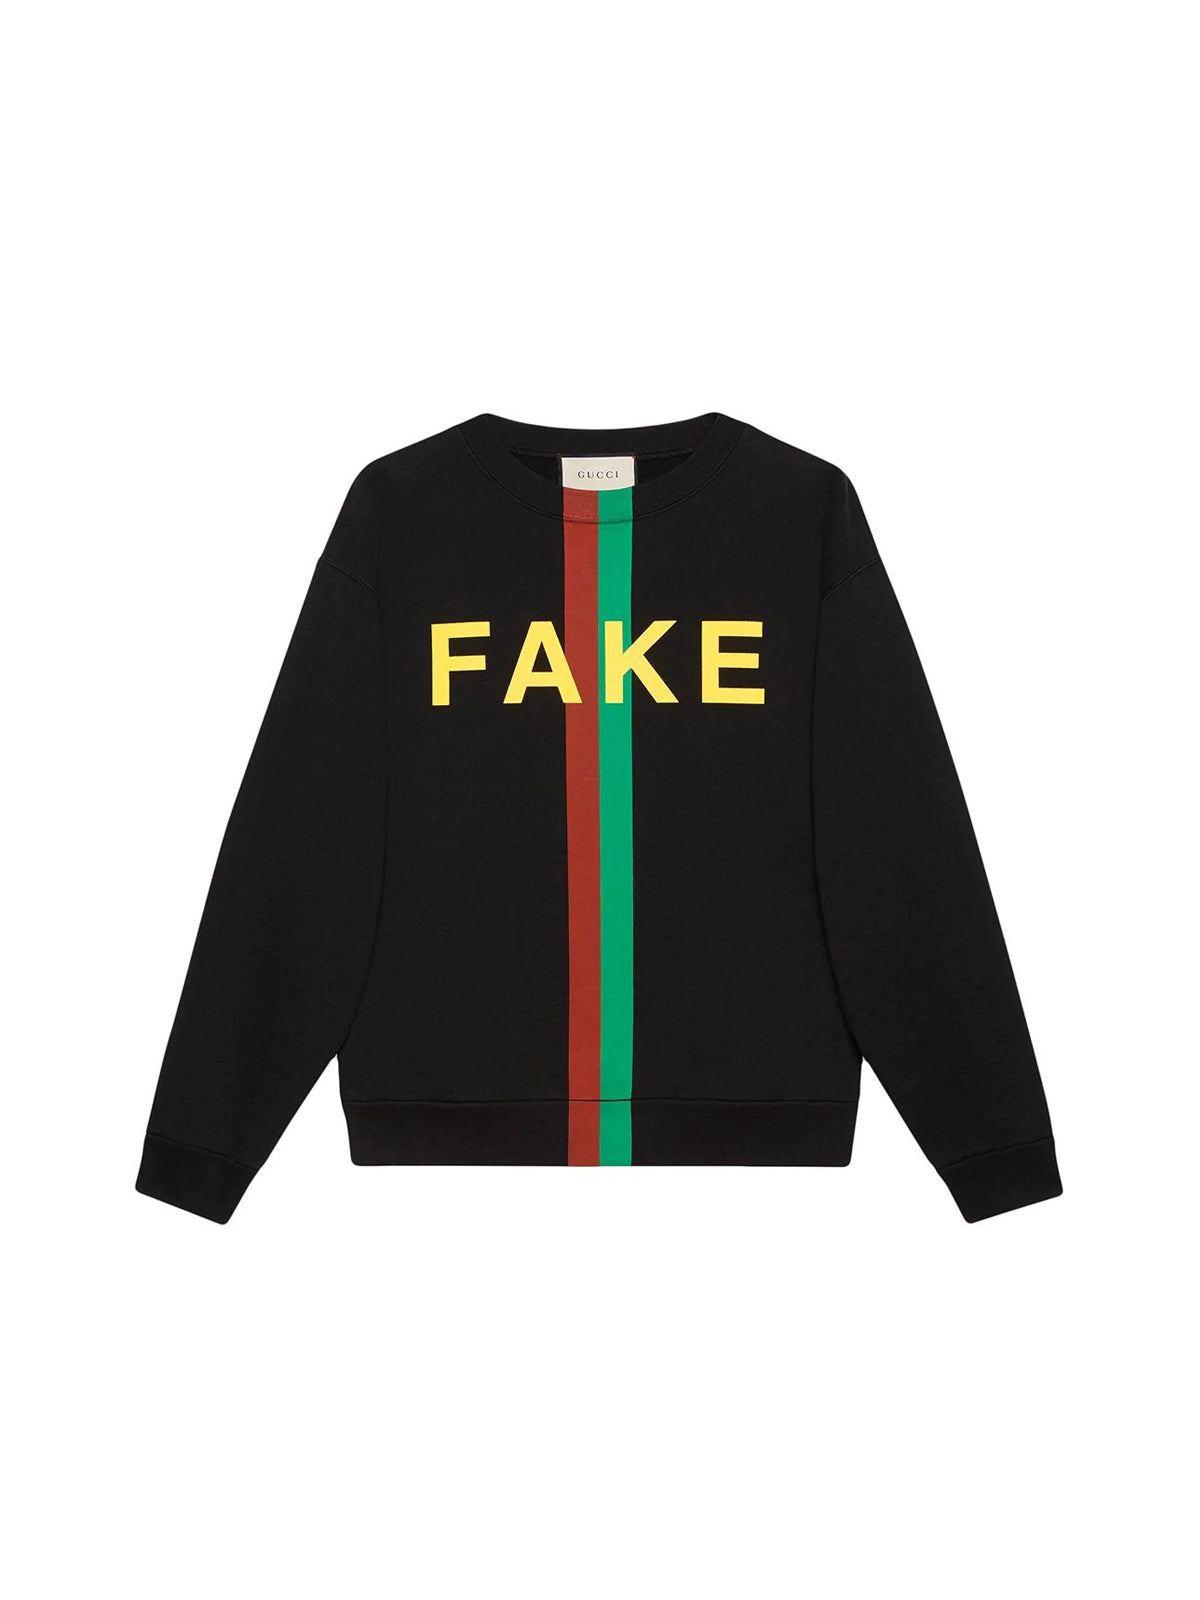 Fake/Not print organic-cotton sweatshirt